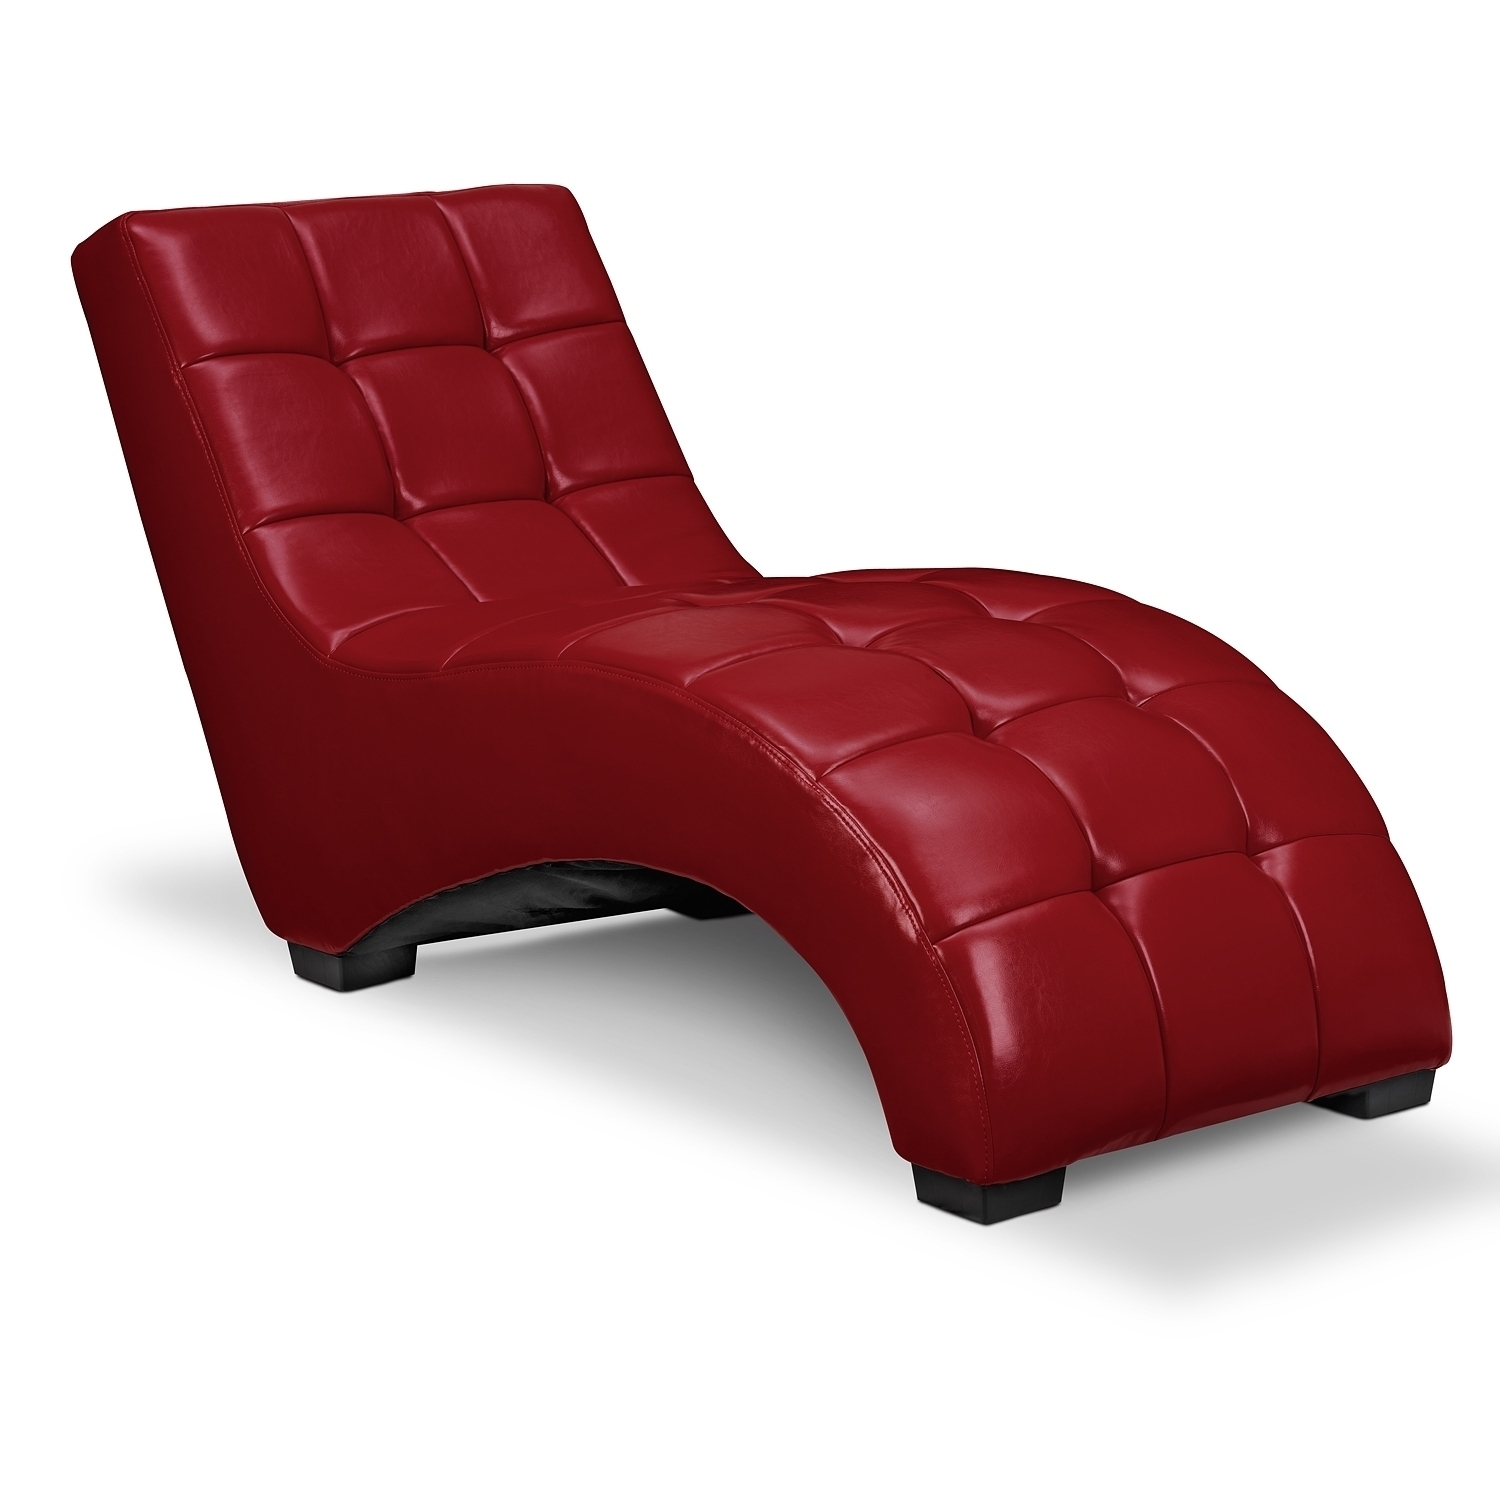 Home Design : Espresso Leather Chaise Lounge Chair With Pillow Top Regarding Most Recent Red Leather Chaises (View 6 of 15)